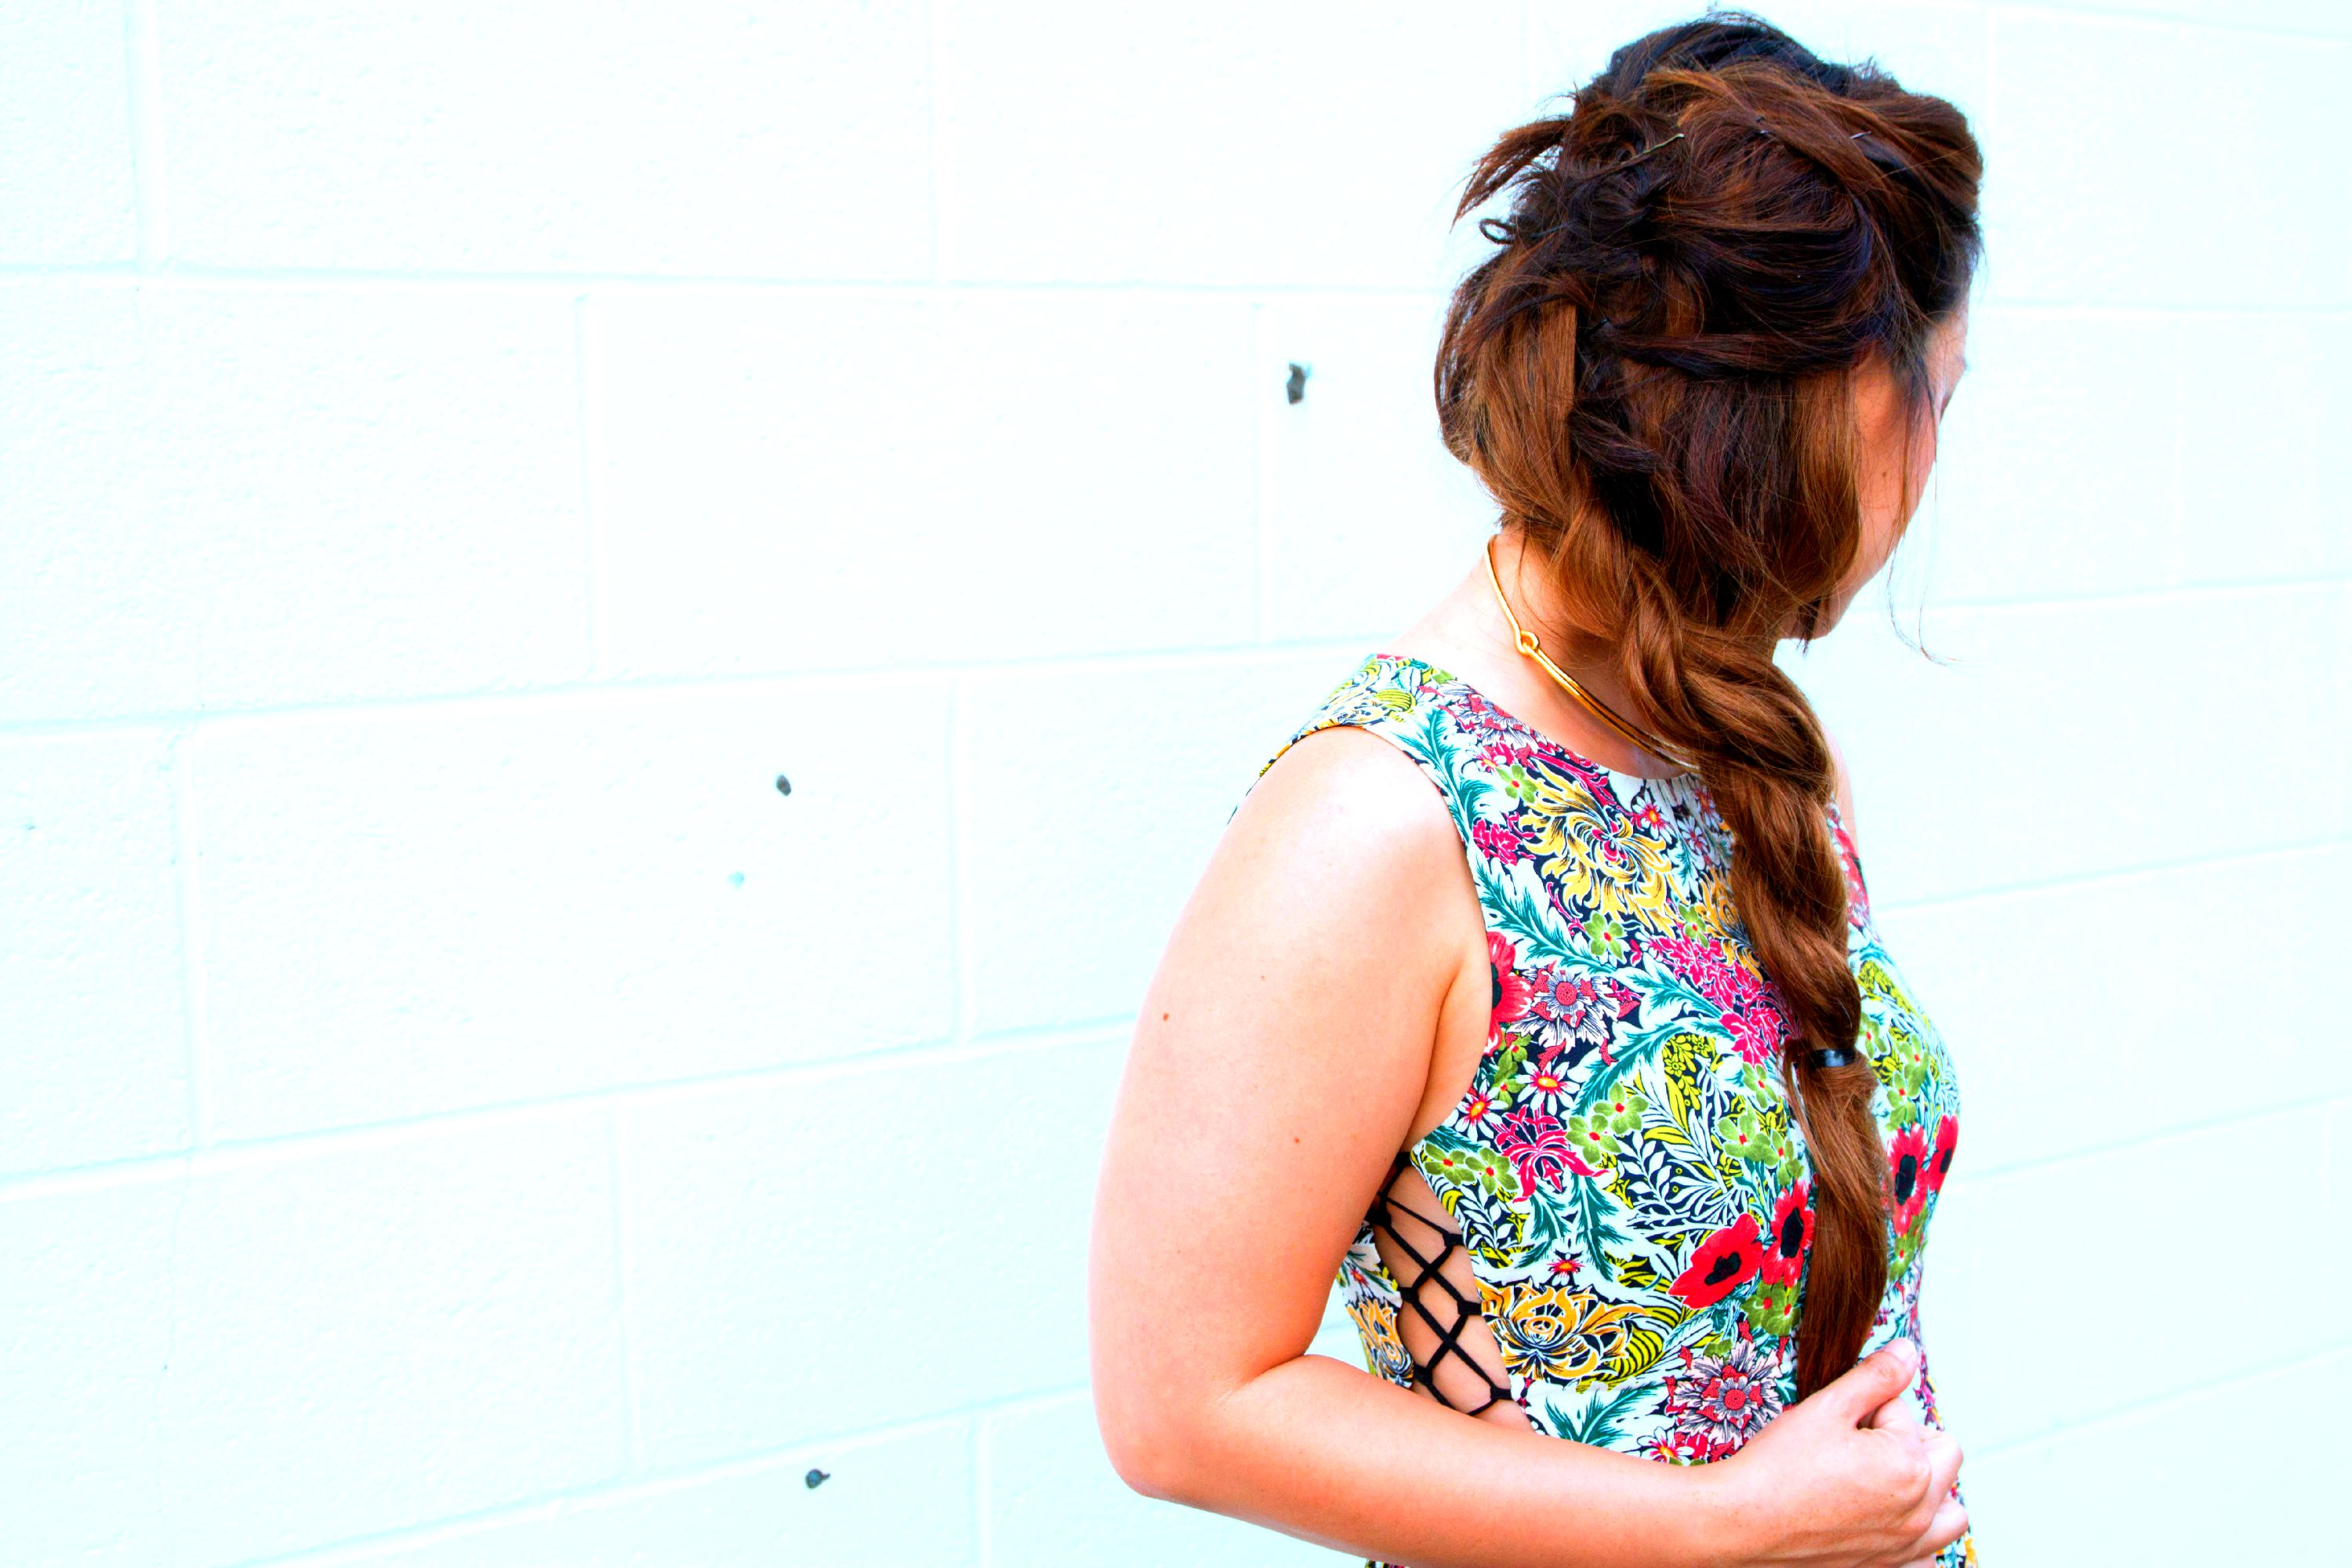 Floral Dresses And Hair Extensions